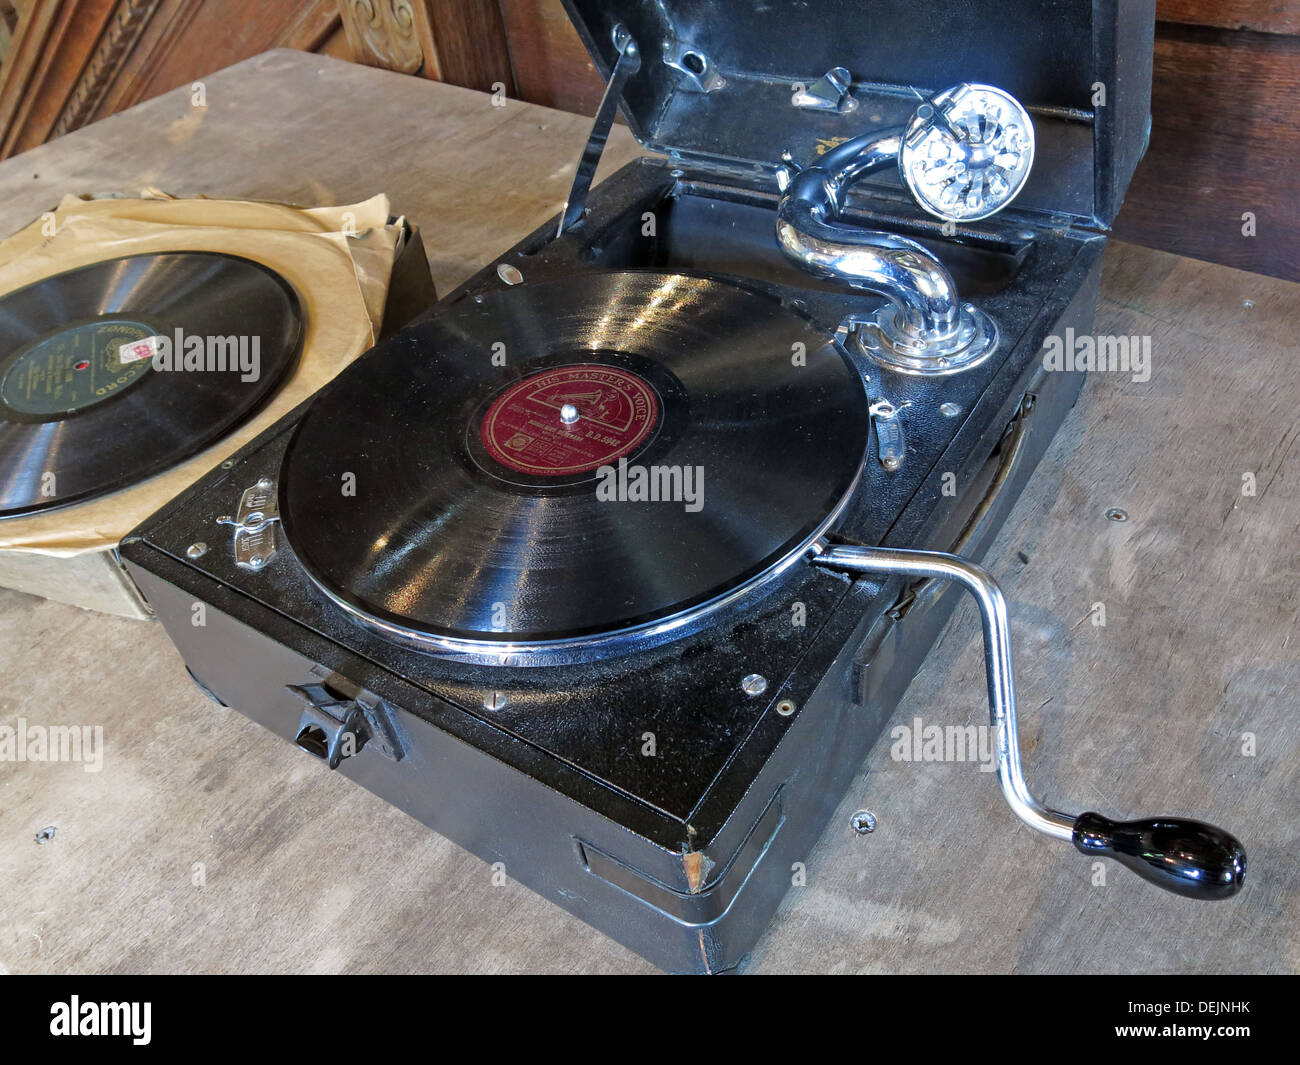 Portable Wind Up Gramophone Record Player with 78rpm Vinyl record, England, UK - Stock Image